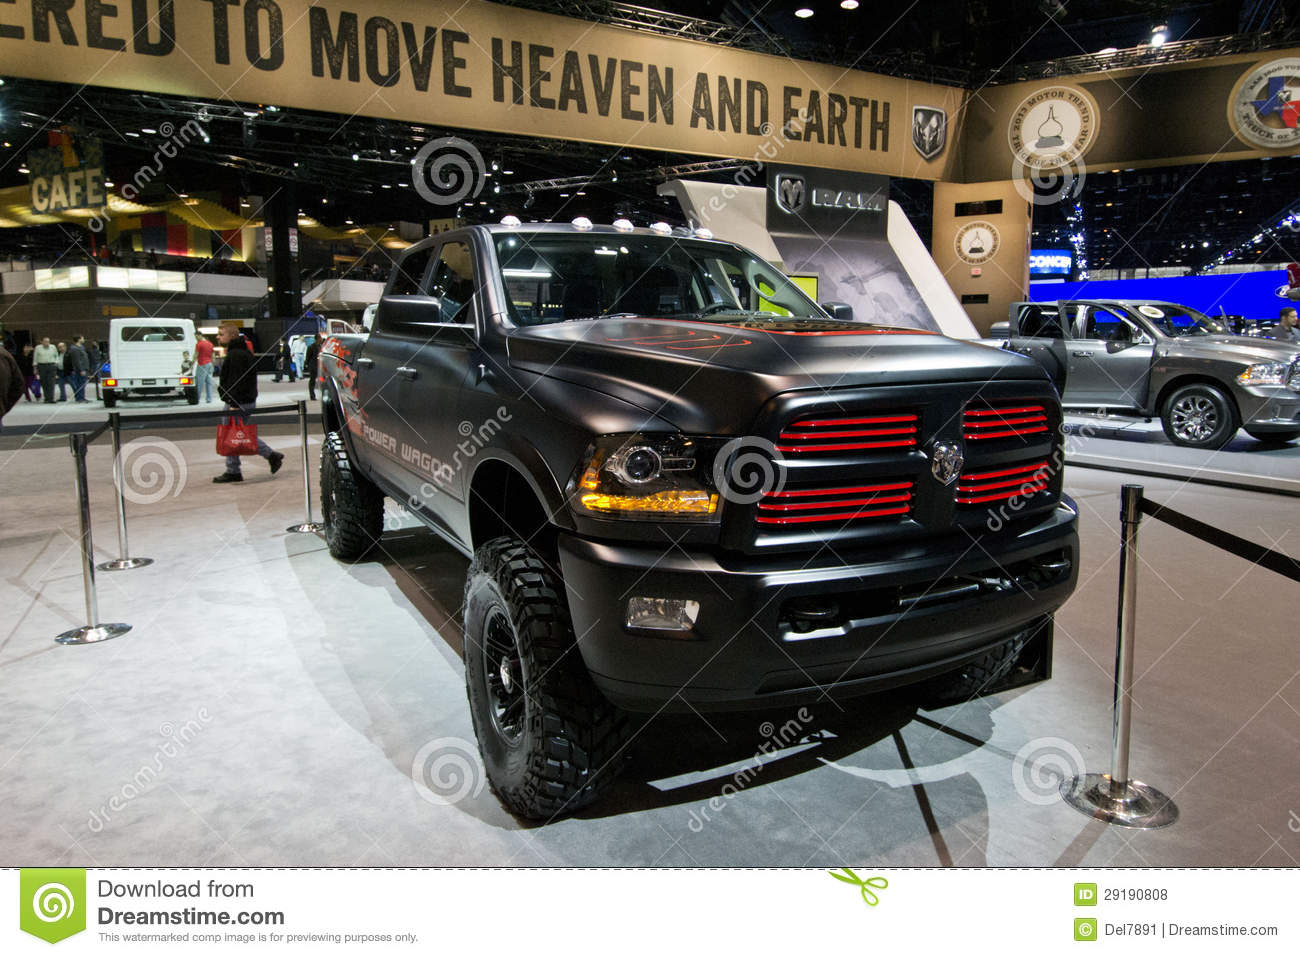 2013 dodge ram powerwagon editorial stock photo image 29190808. Cars Review. Best American Auto & Cars Review